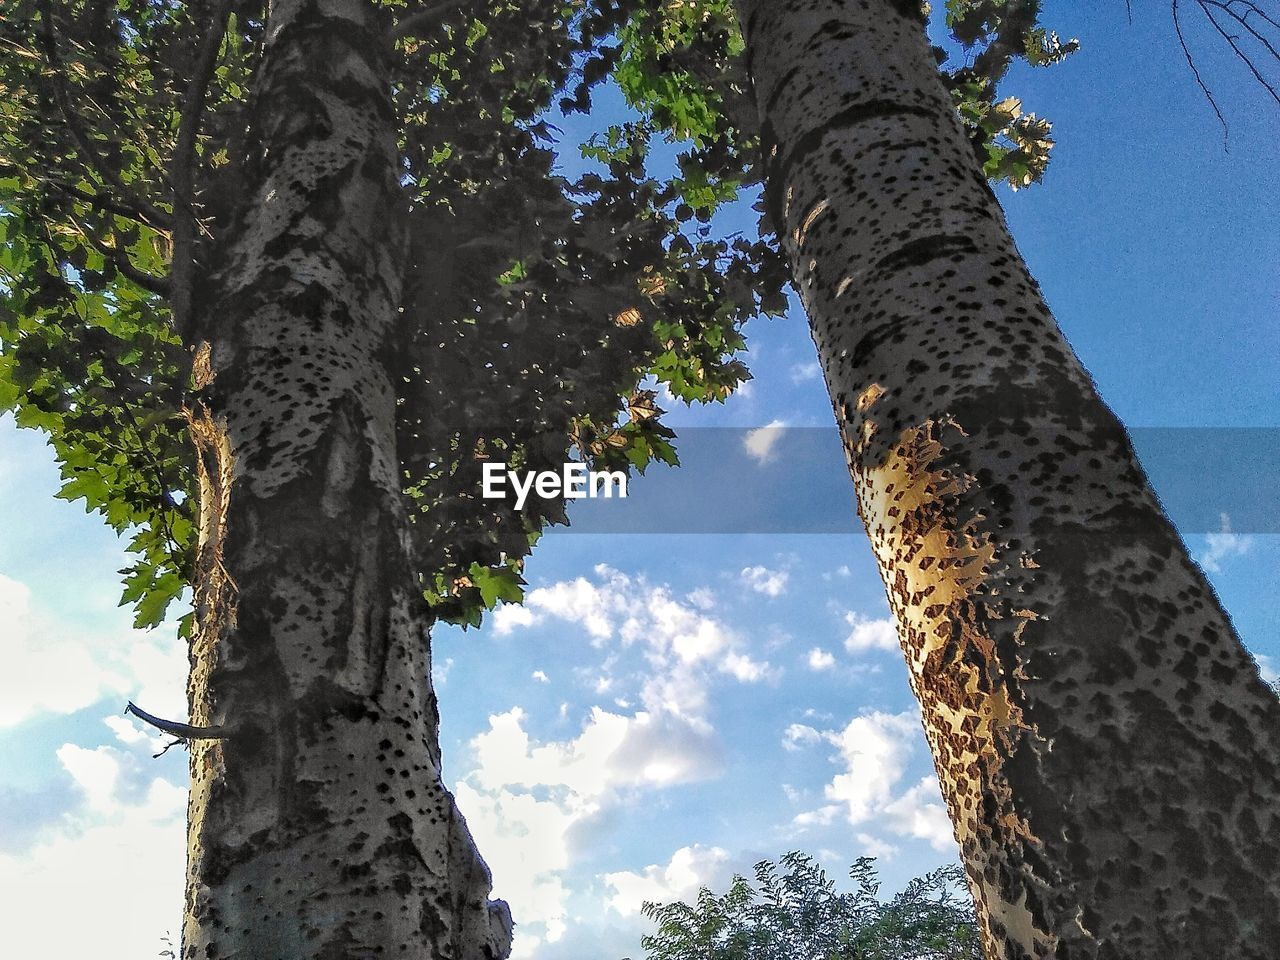 tree, tree trunk, low angle view, day, nature, growth, outdoors, sky, no people, forest, beauty in nature